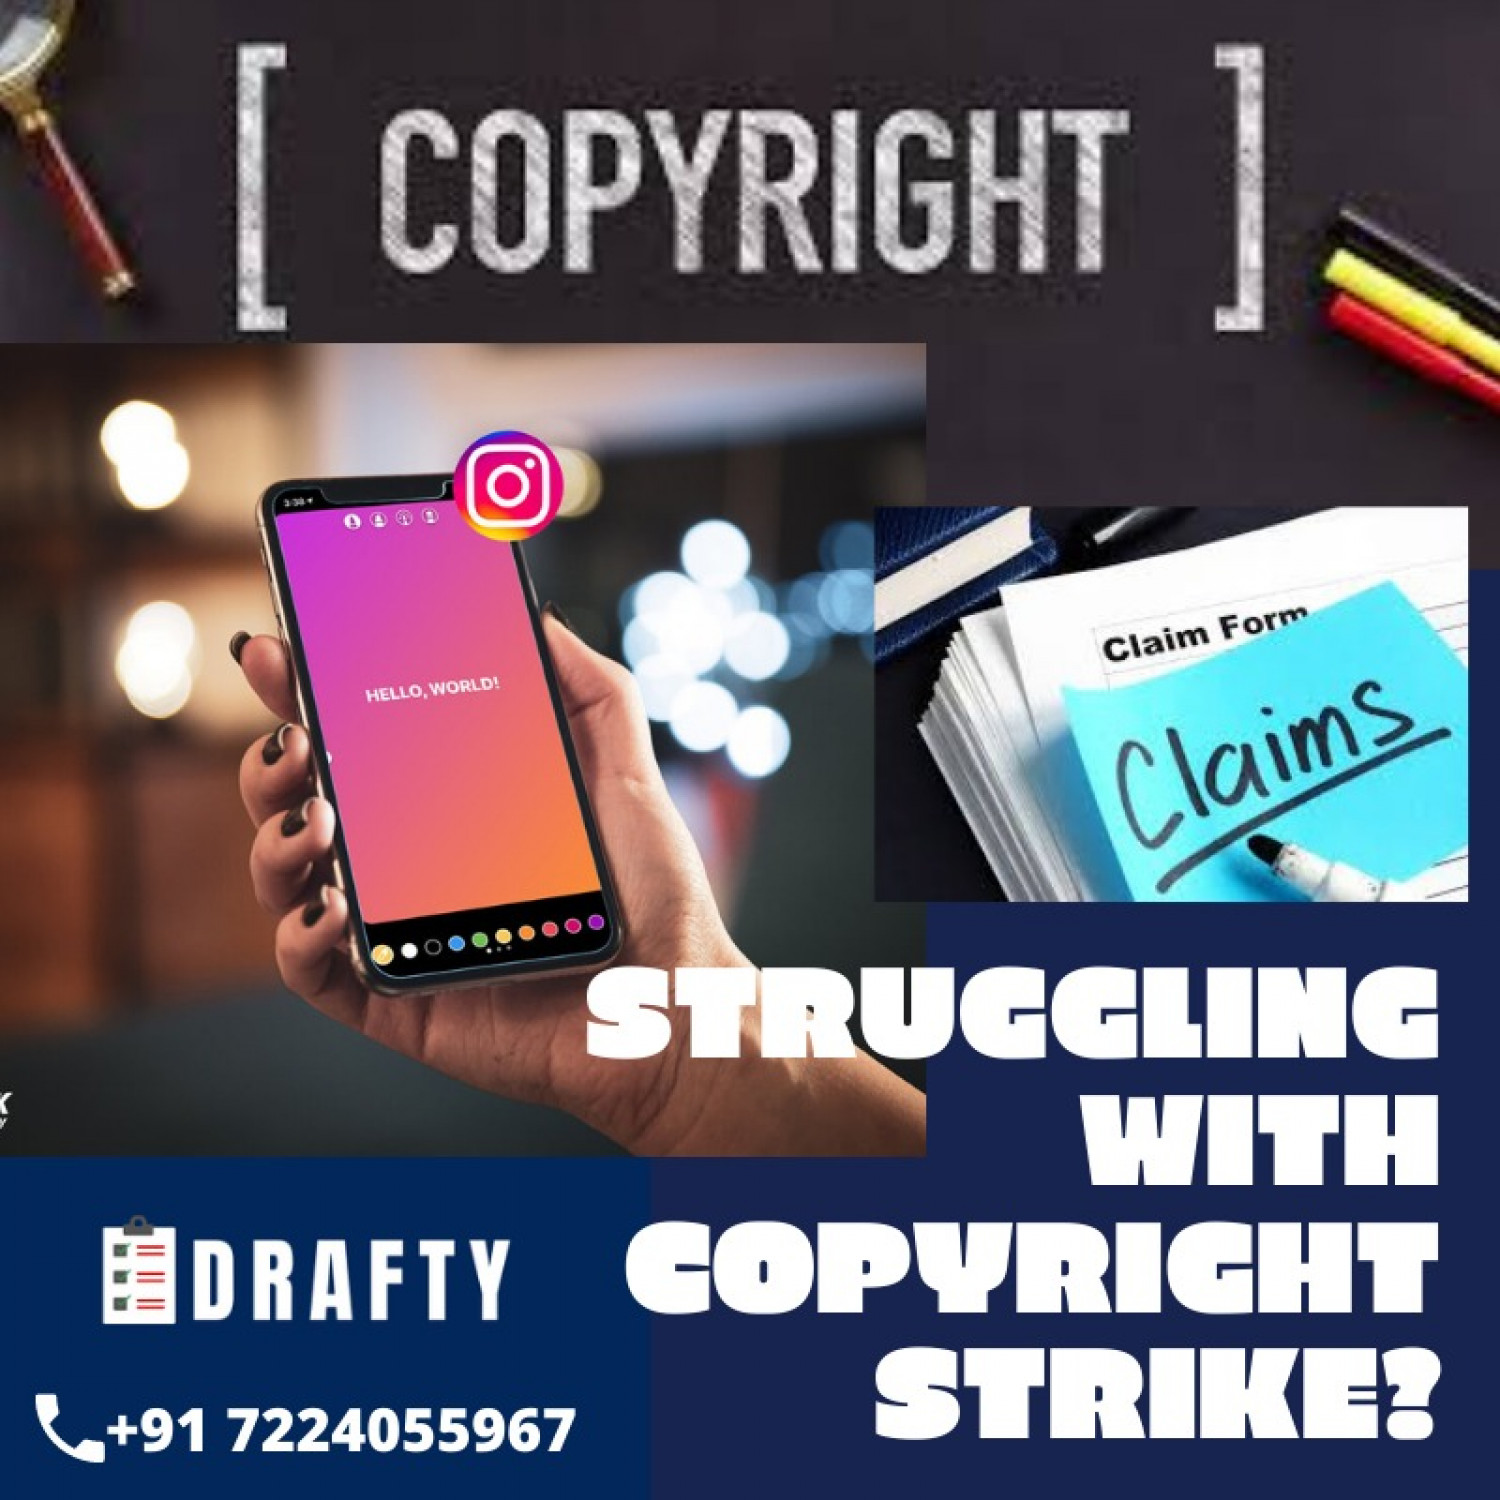 Struggling with copyright strike? Infographic